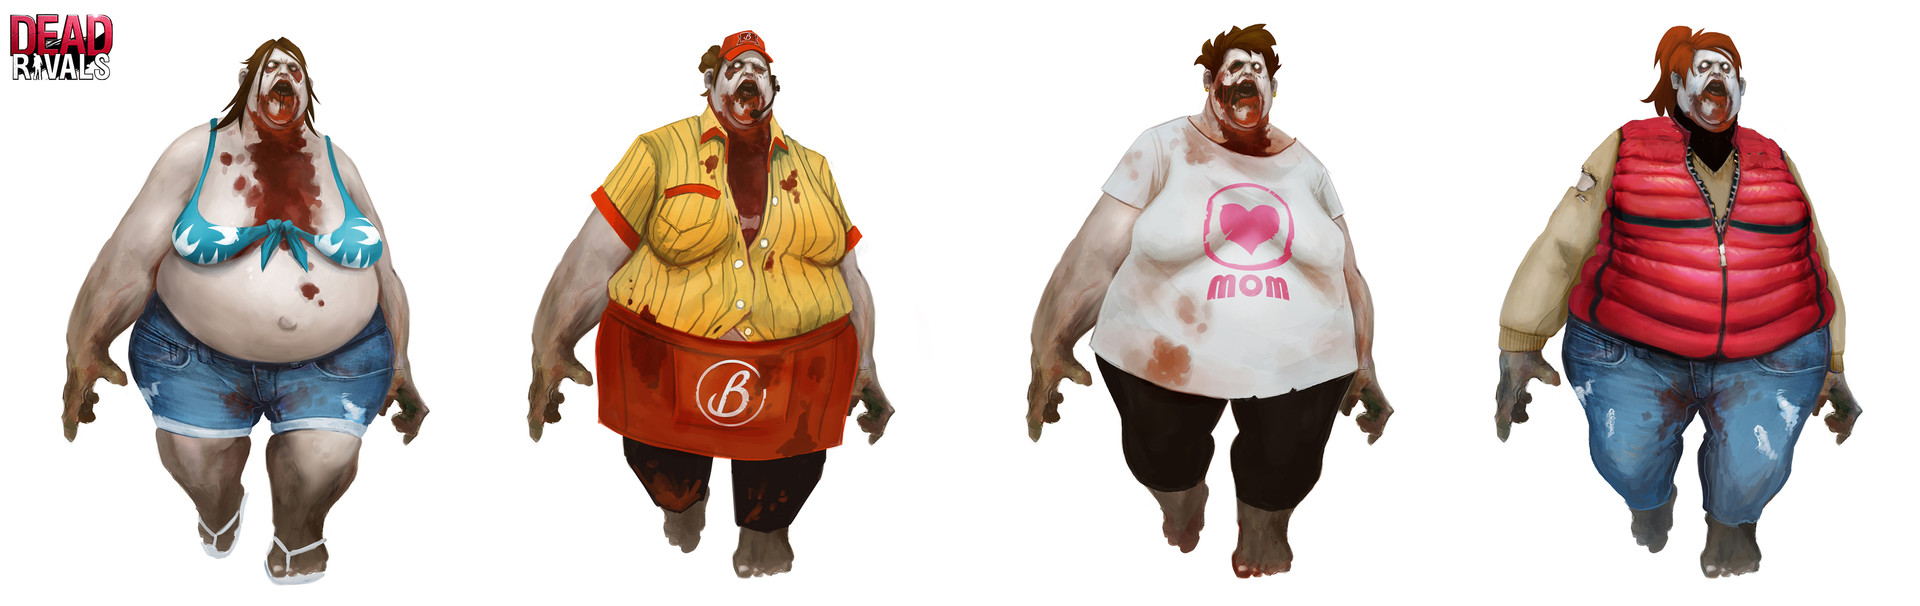 Alexandre chaudret dw characters zombies woman fat01